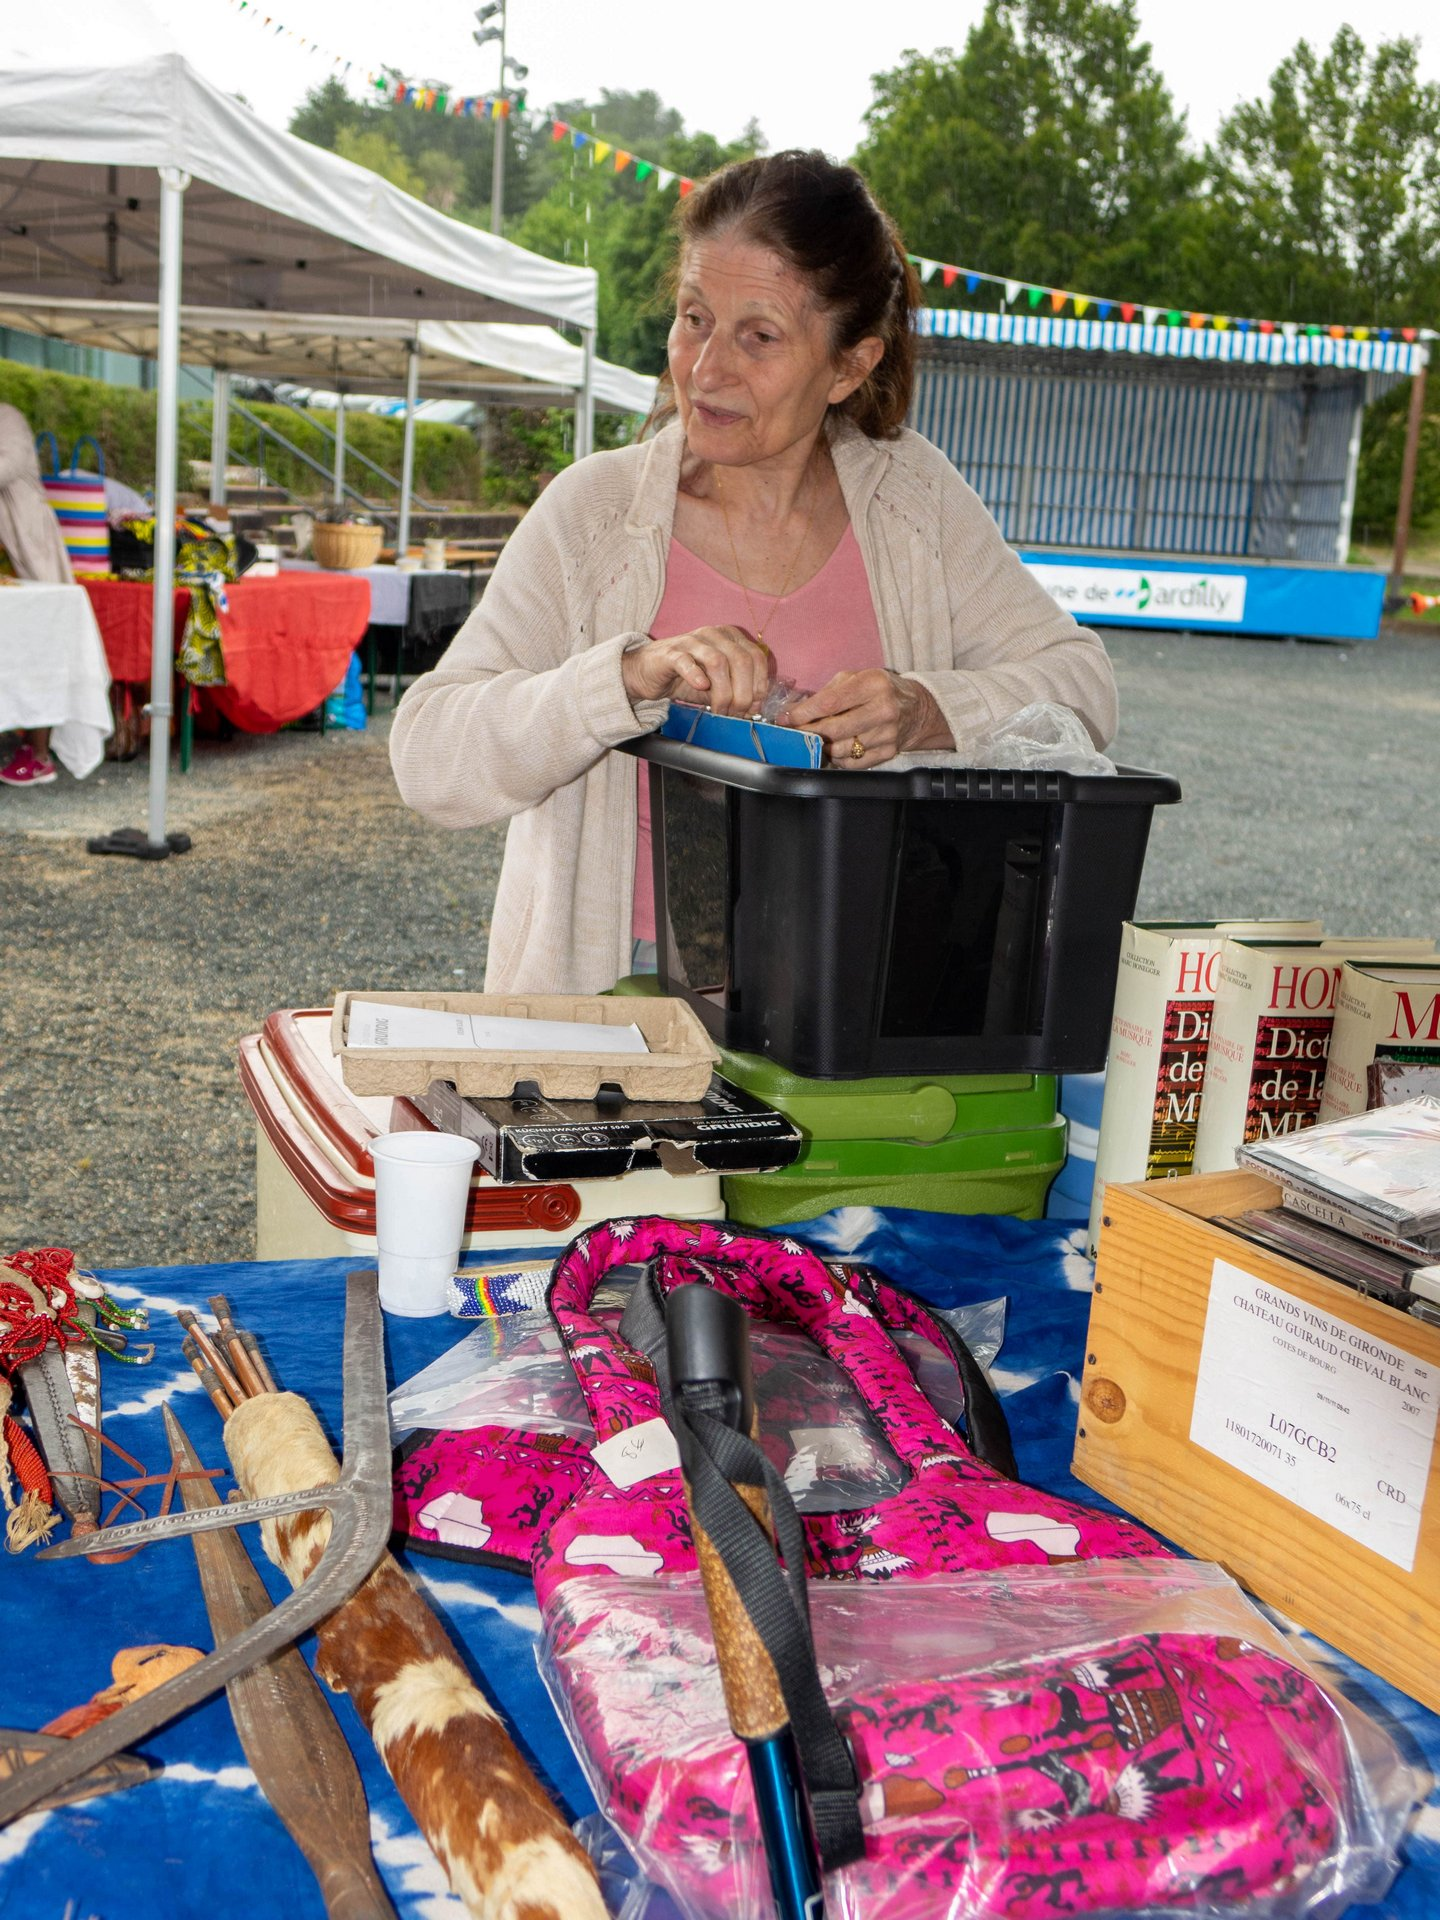 01_Marché_solidaire_19_CHOSALLAND_H